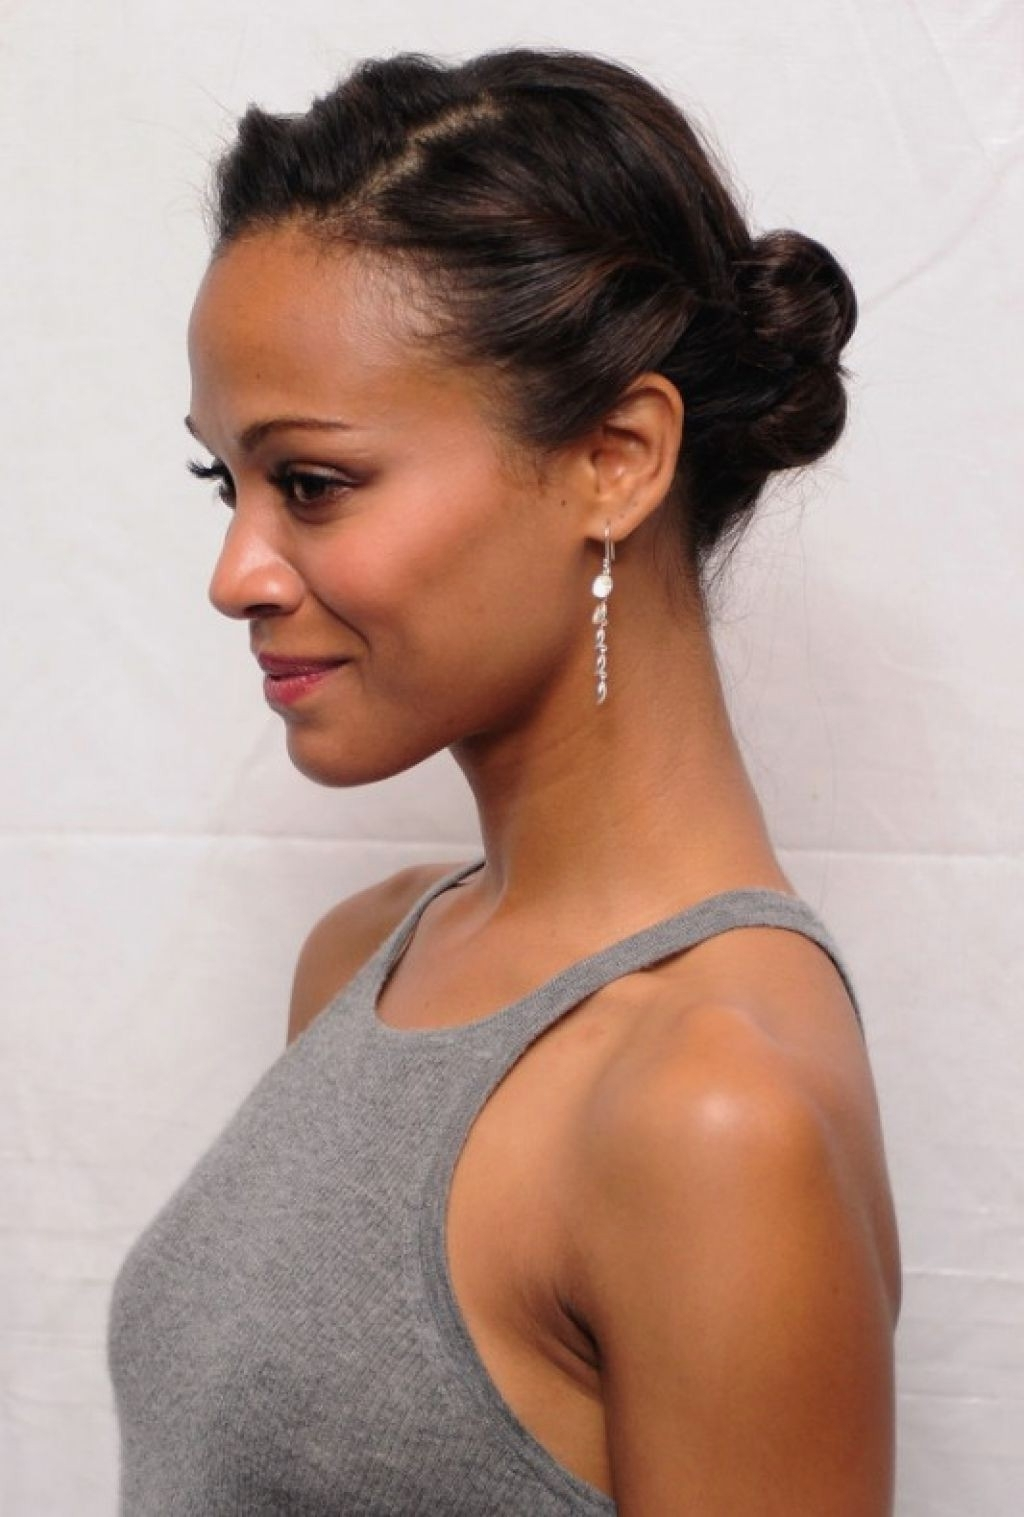 Black Hairstyles : New Black Tie Updo Hairstyles Idea With Complete Pertaining To Updo Hairstyles For Black Tie Event (View 6 of 15)